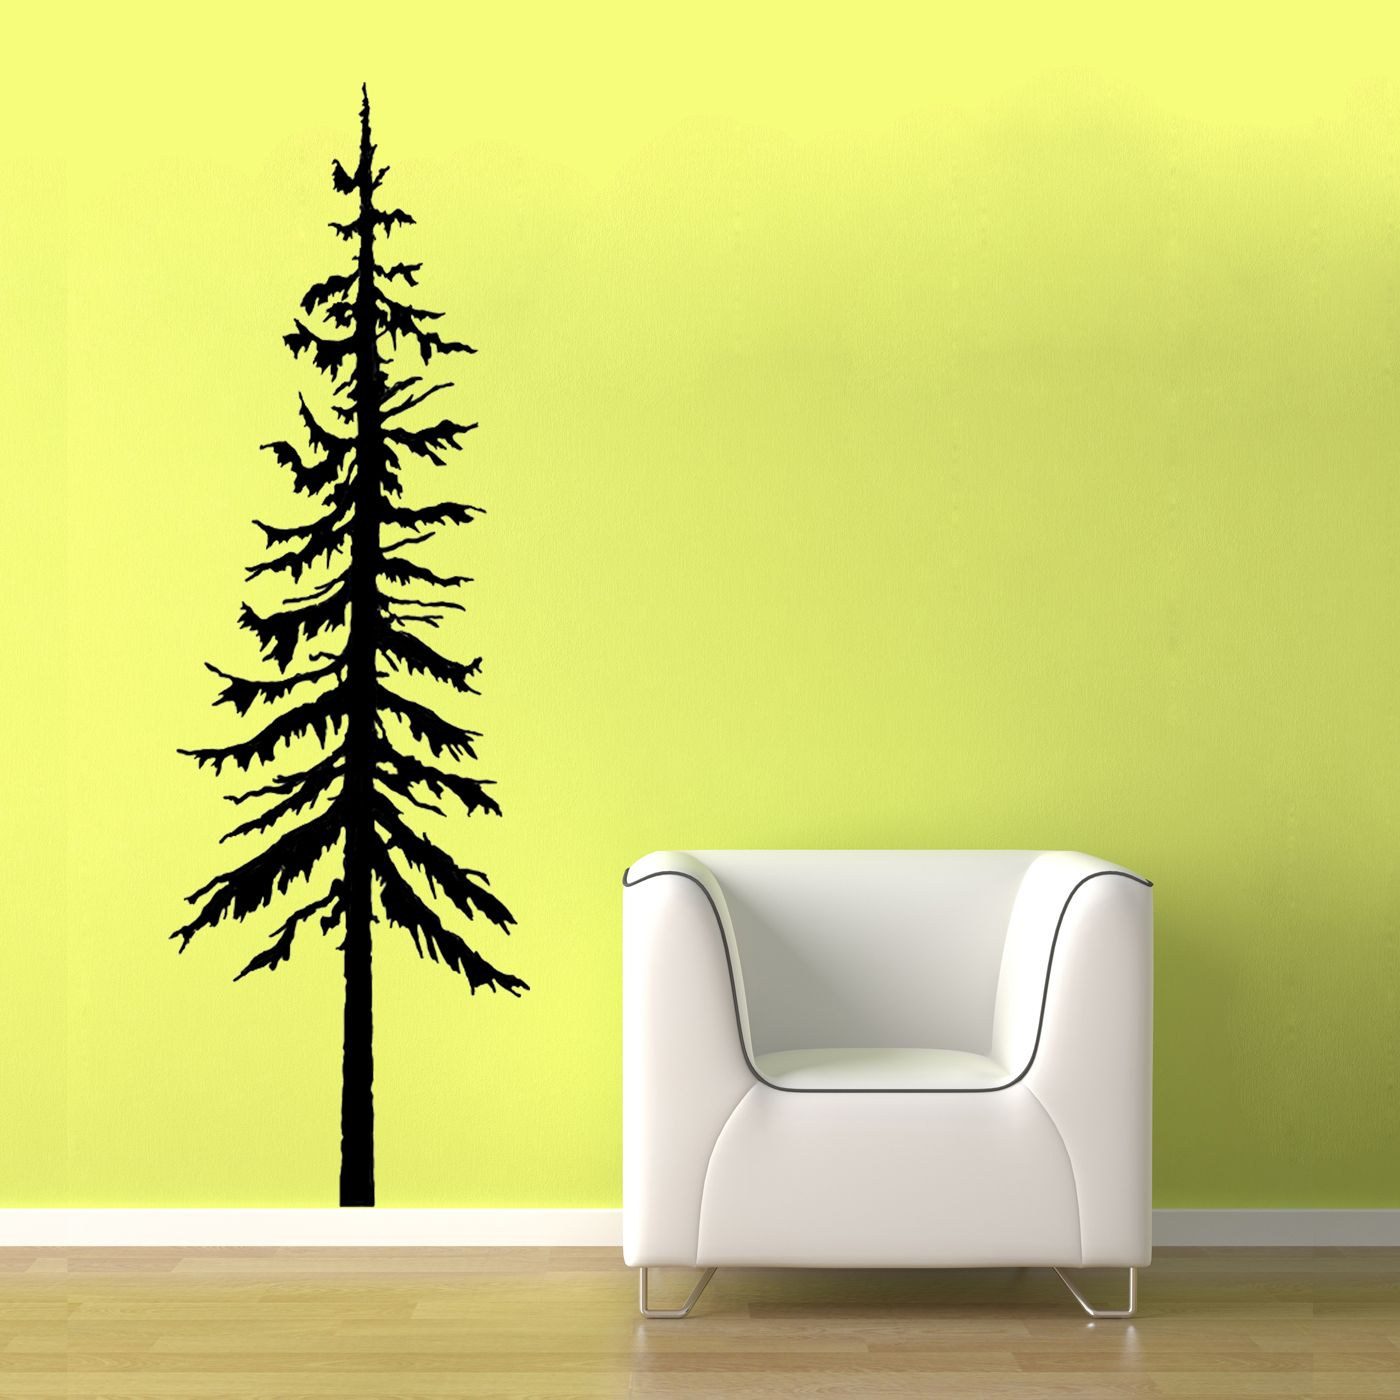 tree wall decals | ... - Pine Tree Wall Graphic from Old Barn Rescue ...